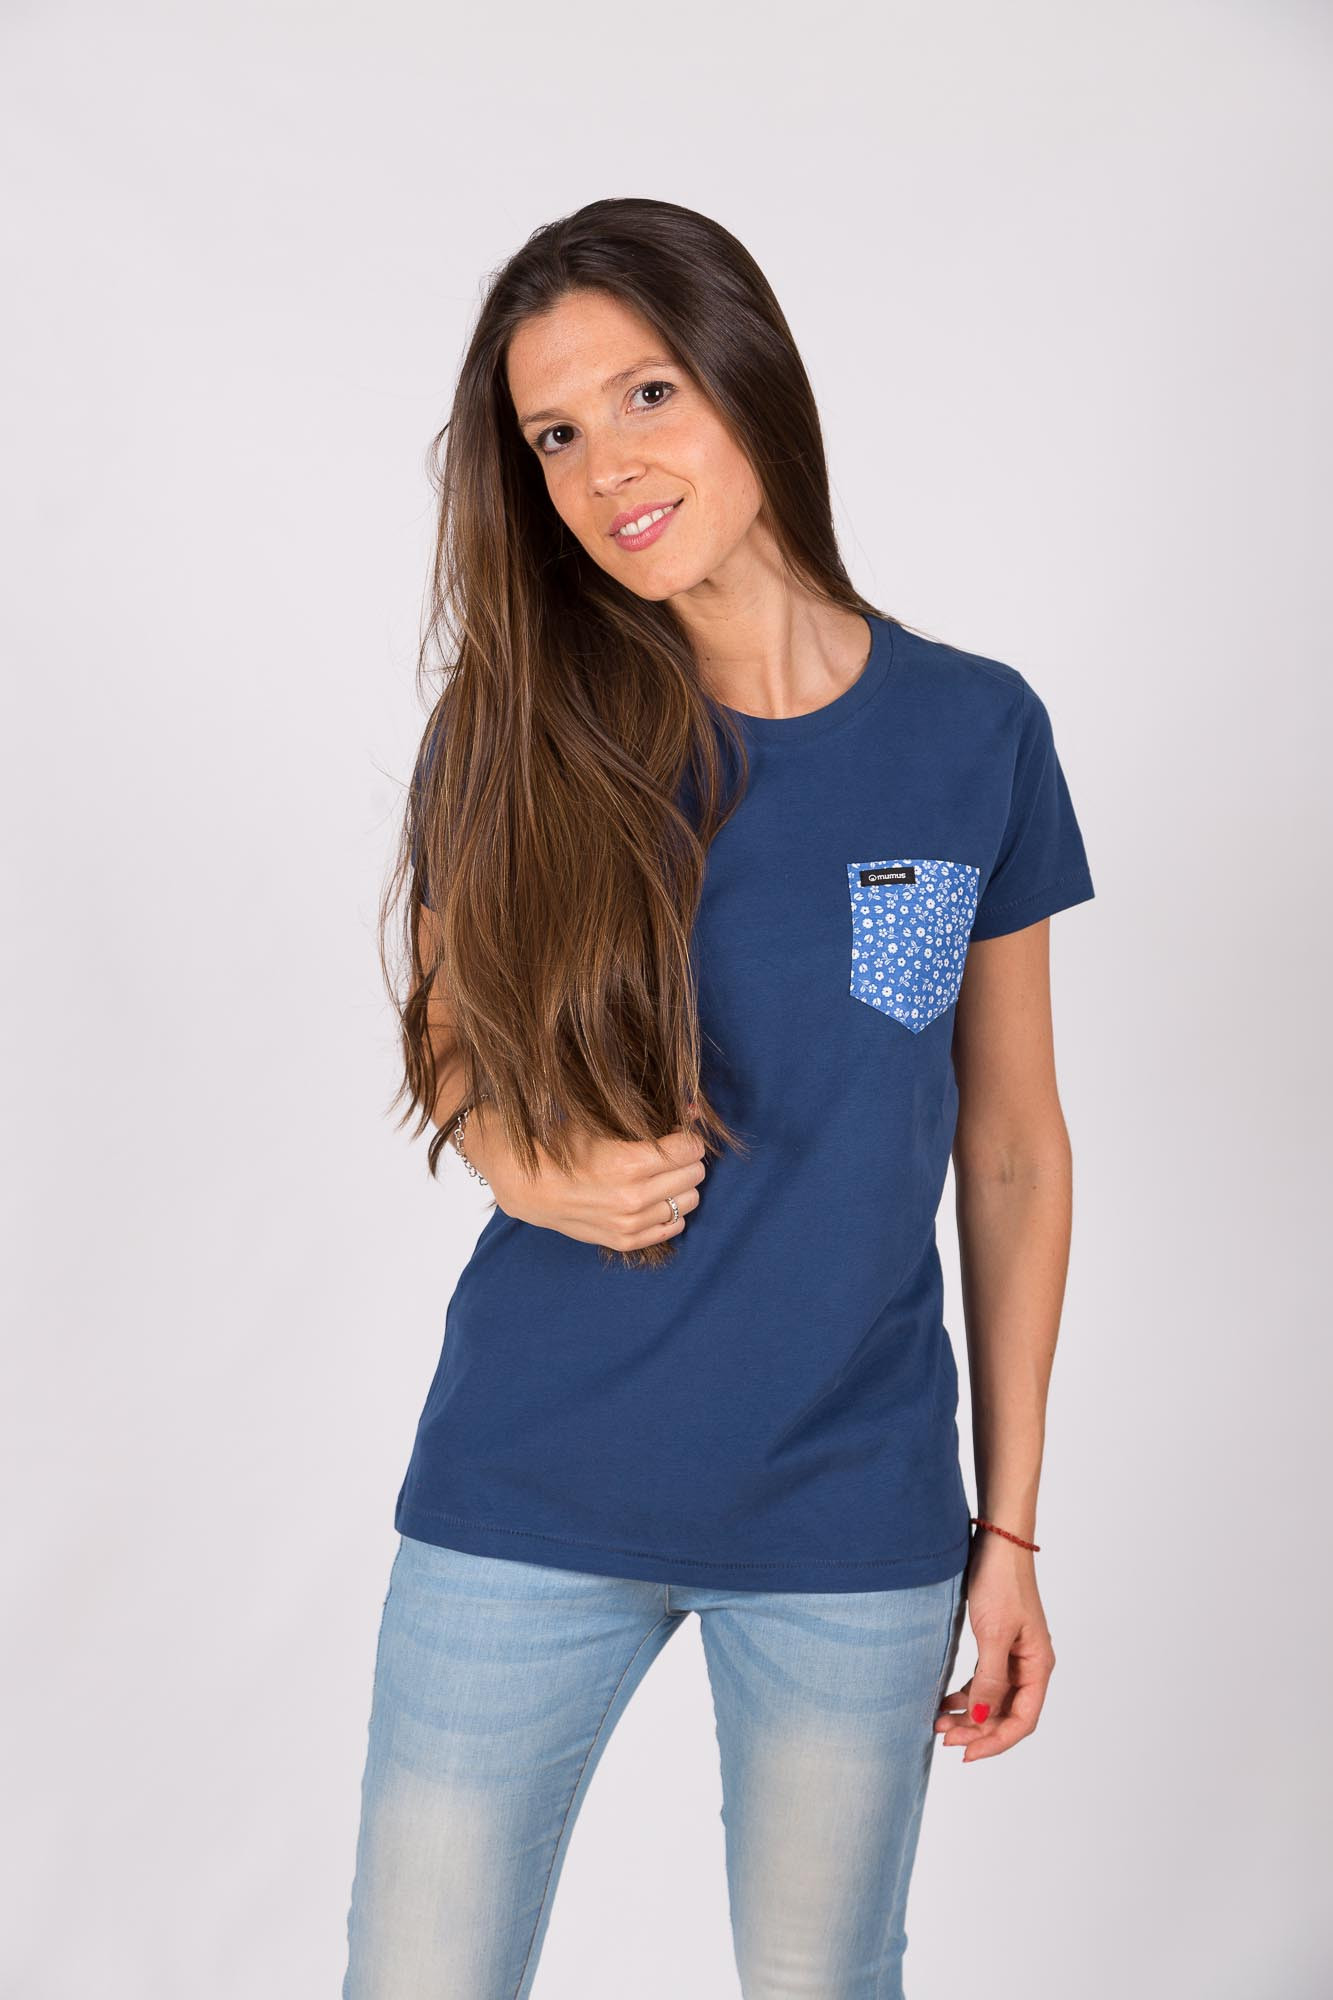 Camiseta Azul Estamflor